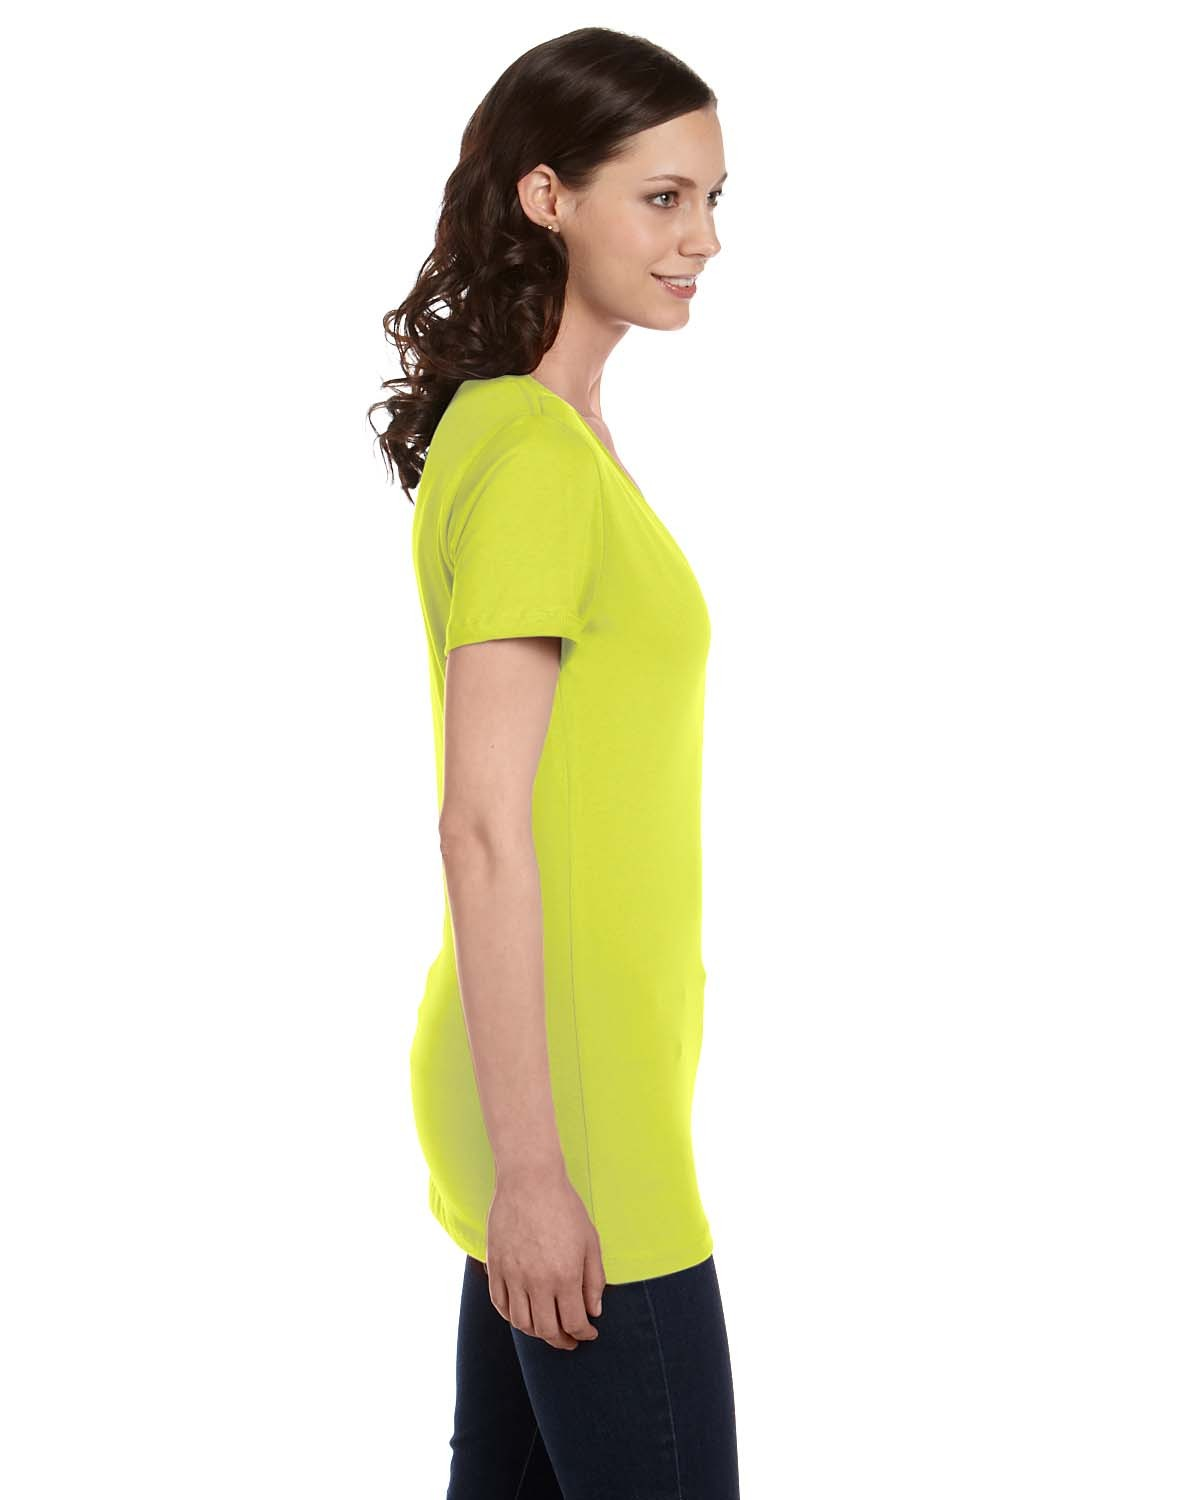 B6035 Bella + Canvas NEON YELLOW